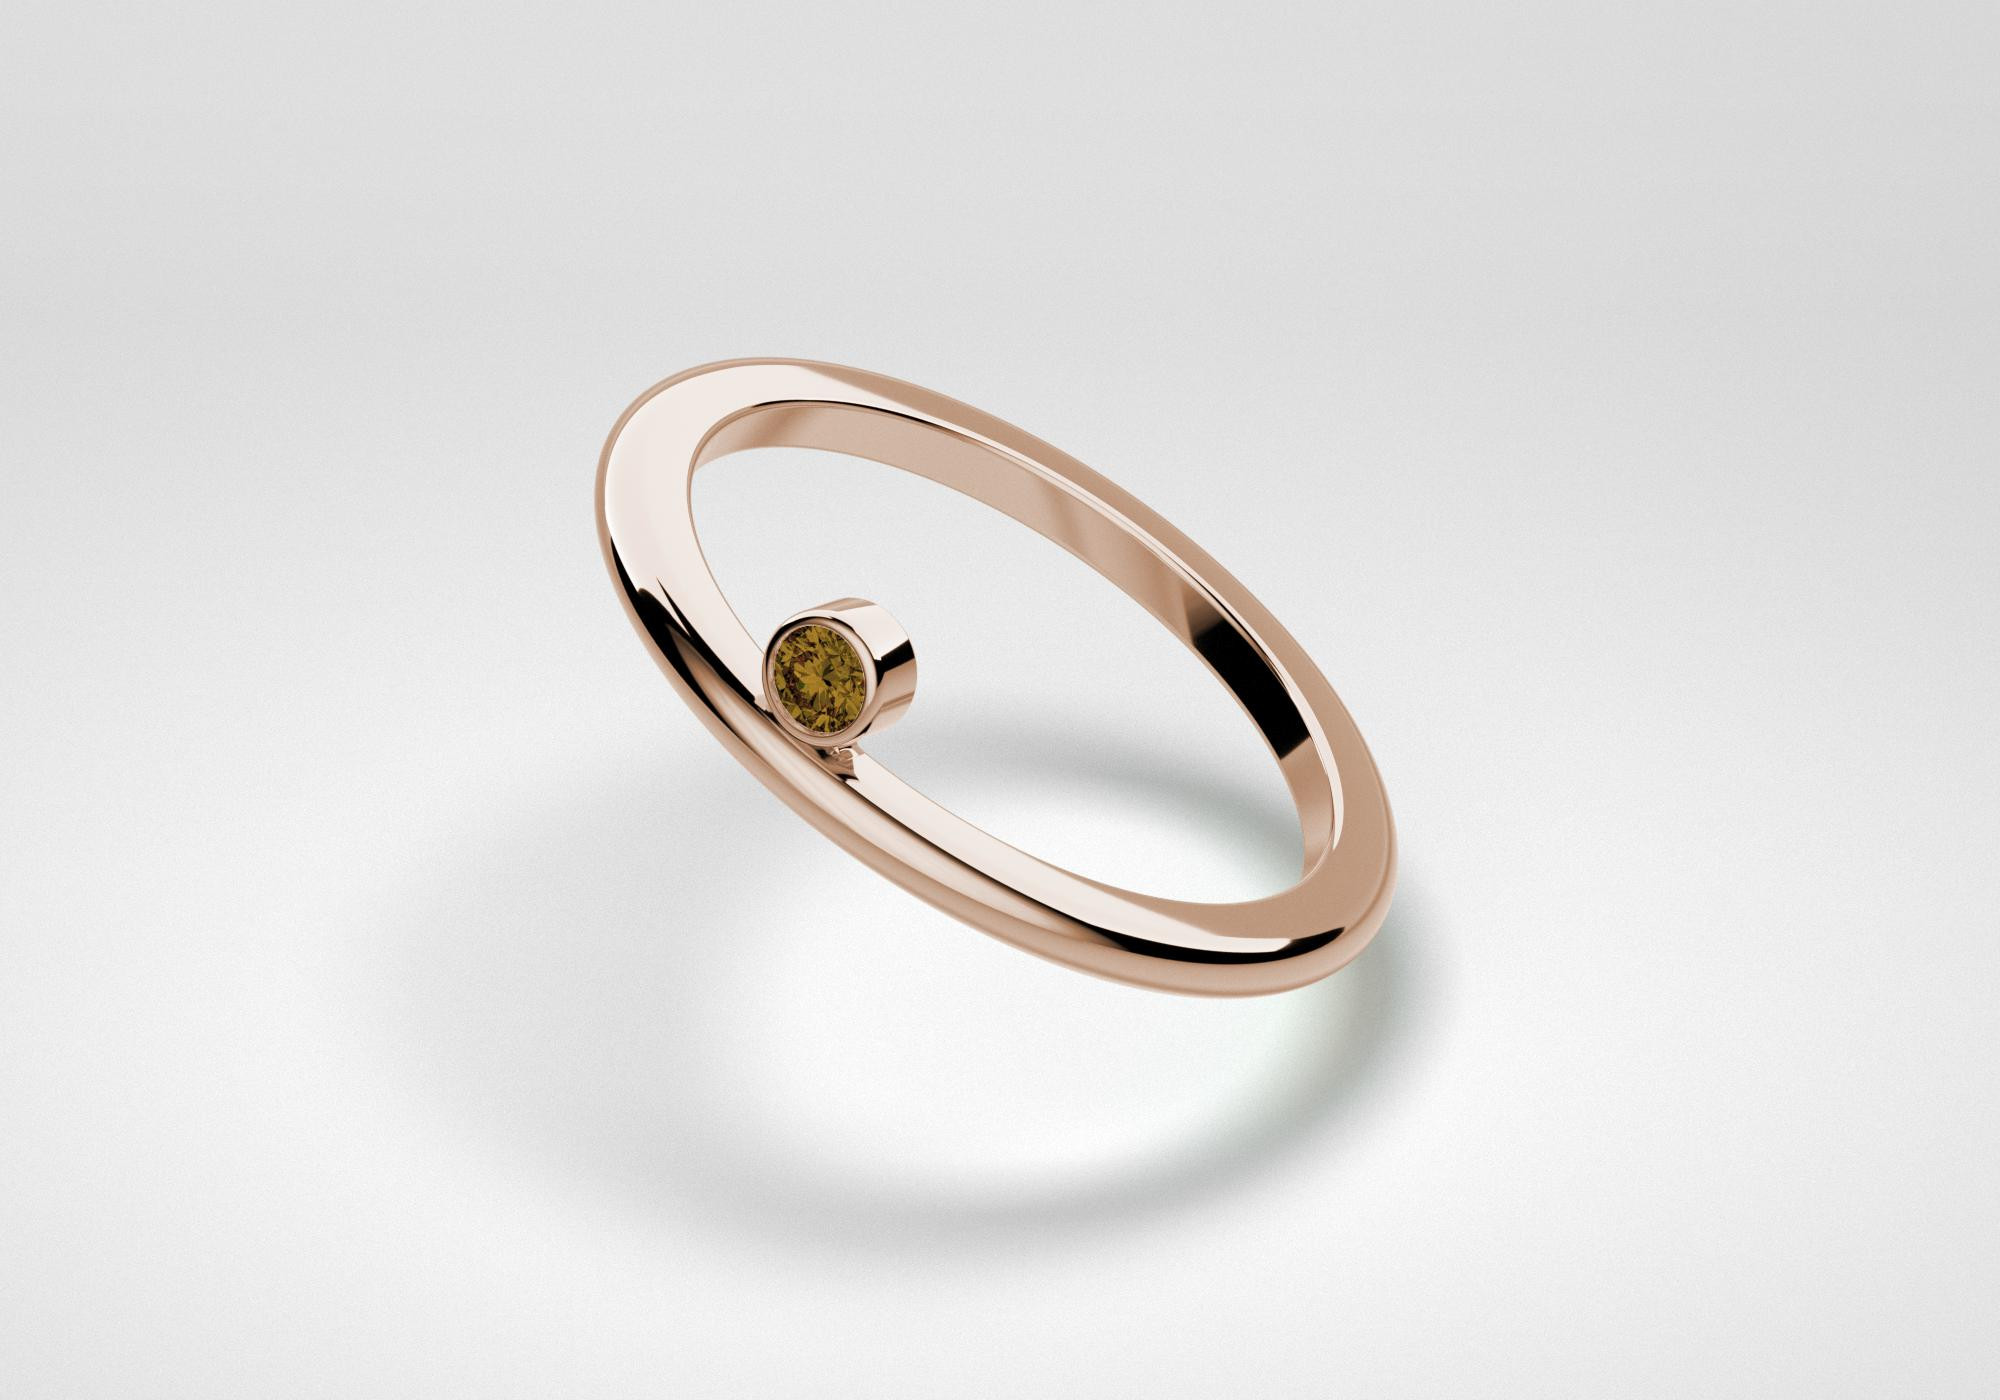 The One Ring - Chocolate - Rose Gold 18 Kt